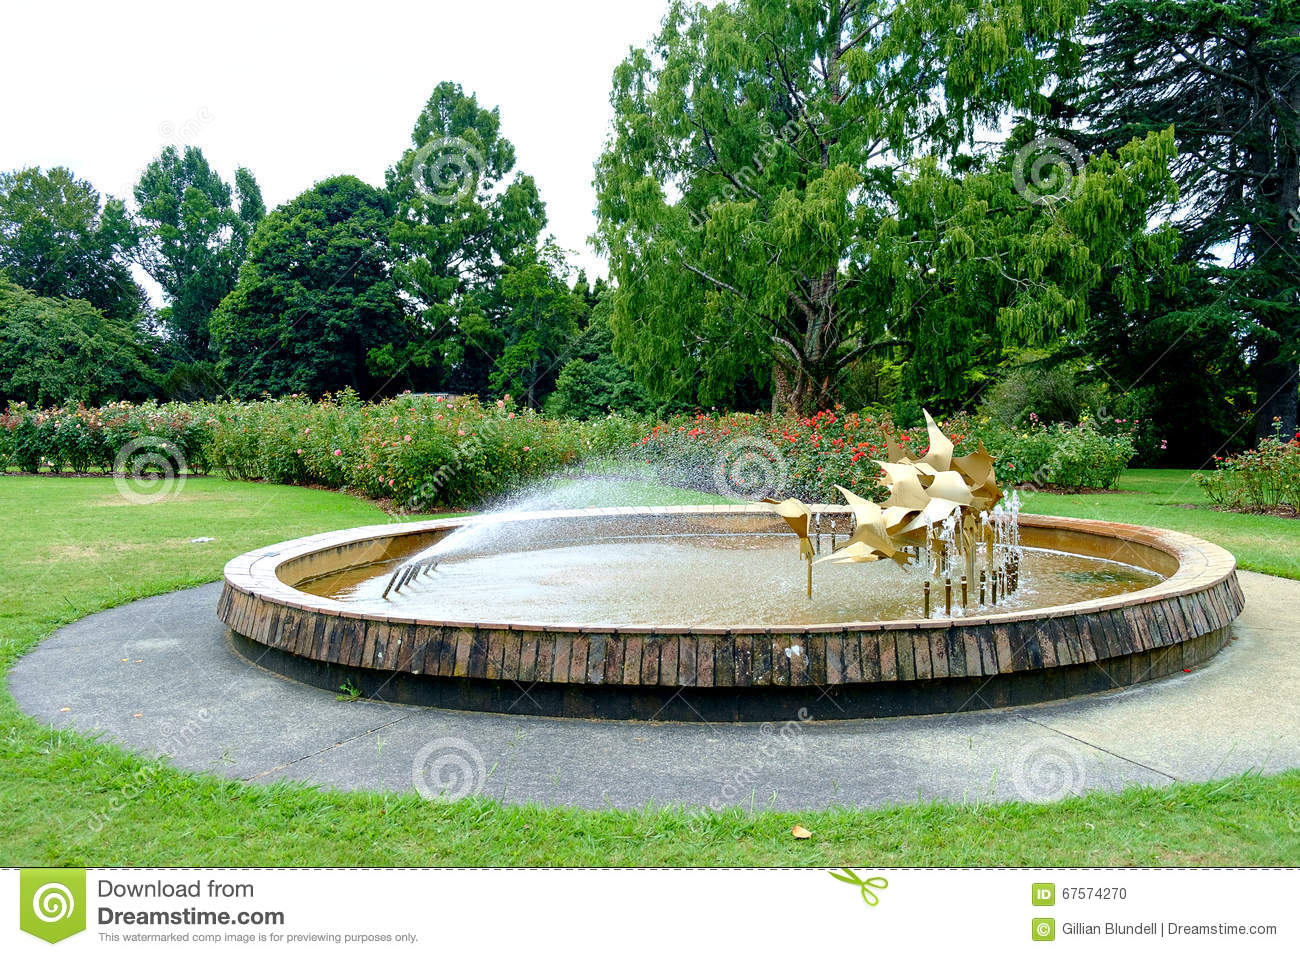 Water fountains outdoor new zealand - Fountain At Te Awamutu Rose Gardens Te Awamutu New Zealand Nz Nzl